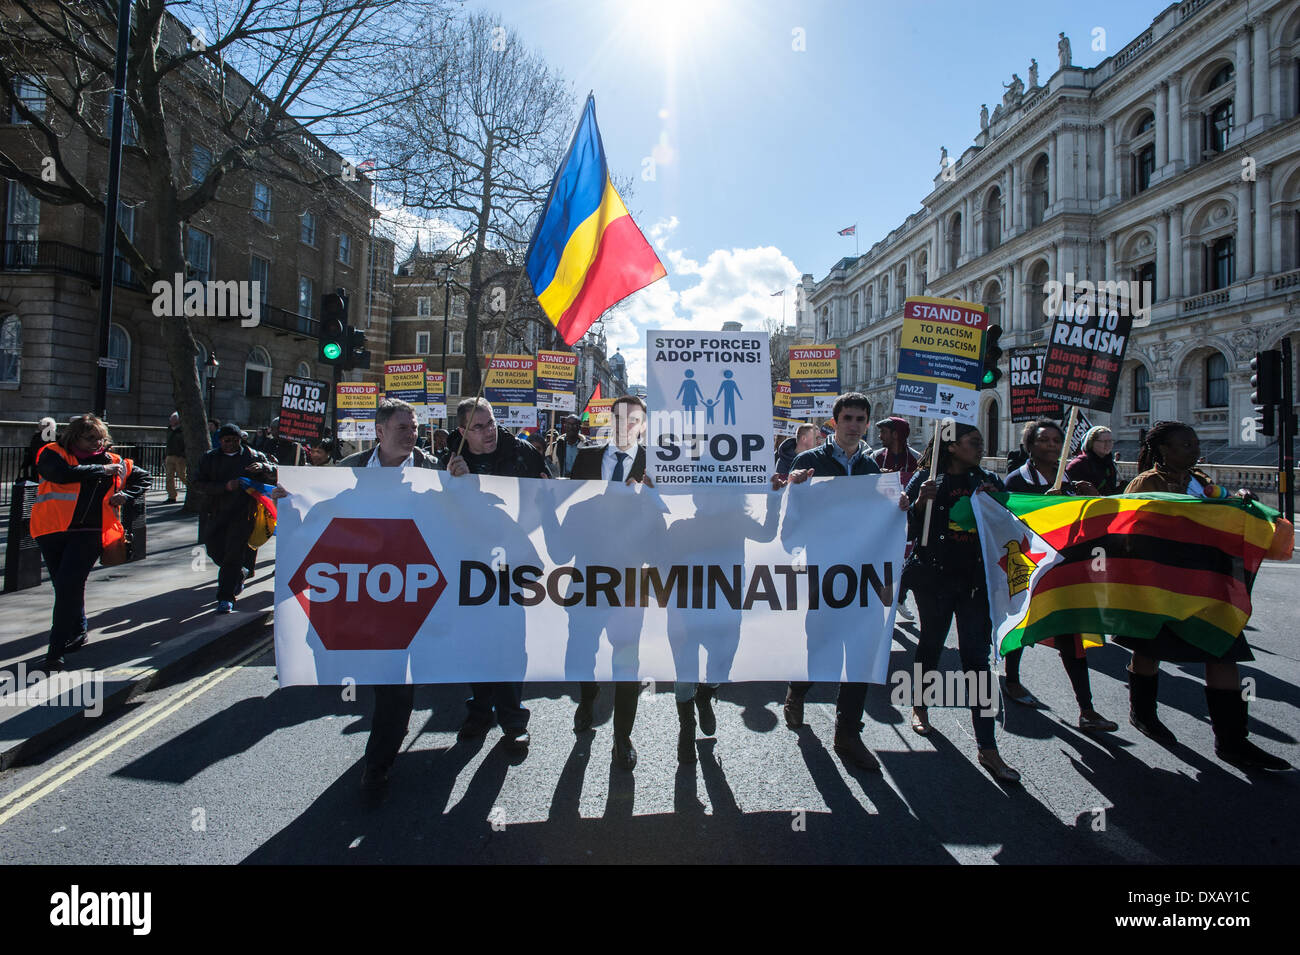 London, UK - 22 March 2014: marchers hold a banner reading 'Stop Discrimination'  to celebrate the United Nations International Anti-Racism Day. Credit:  Piero Cruciatti/Alamy Live News - Stock Image